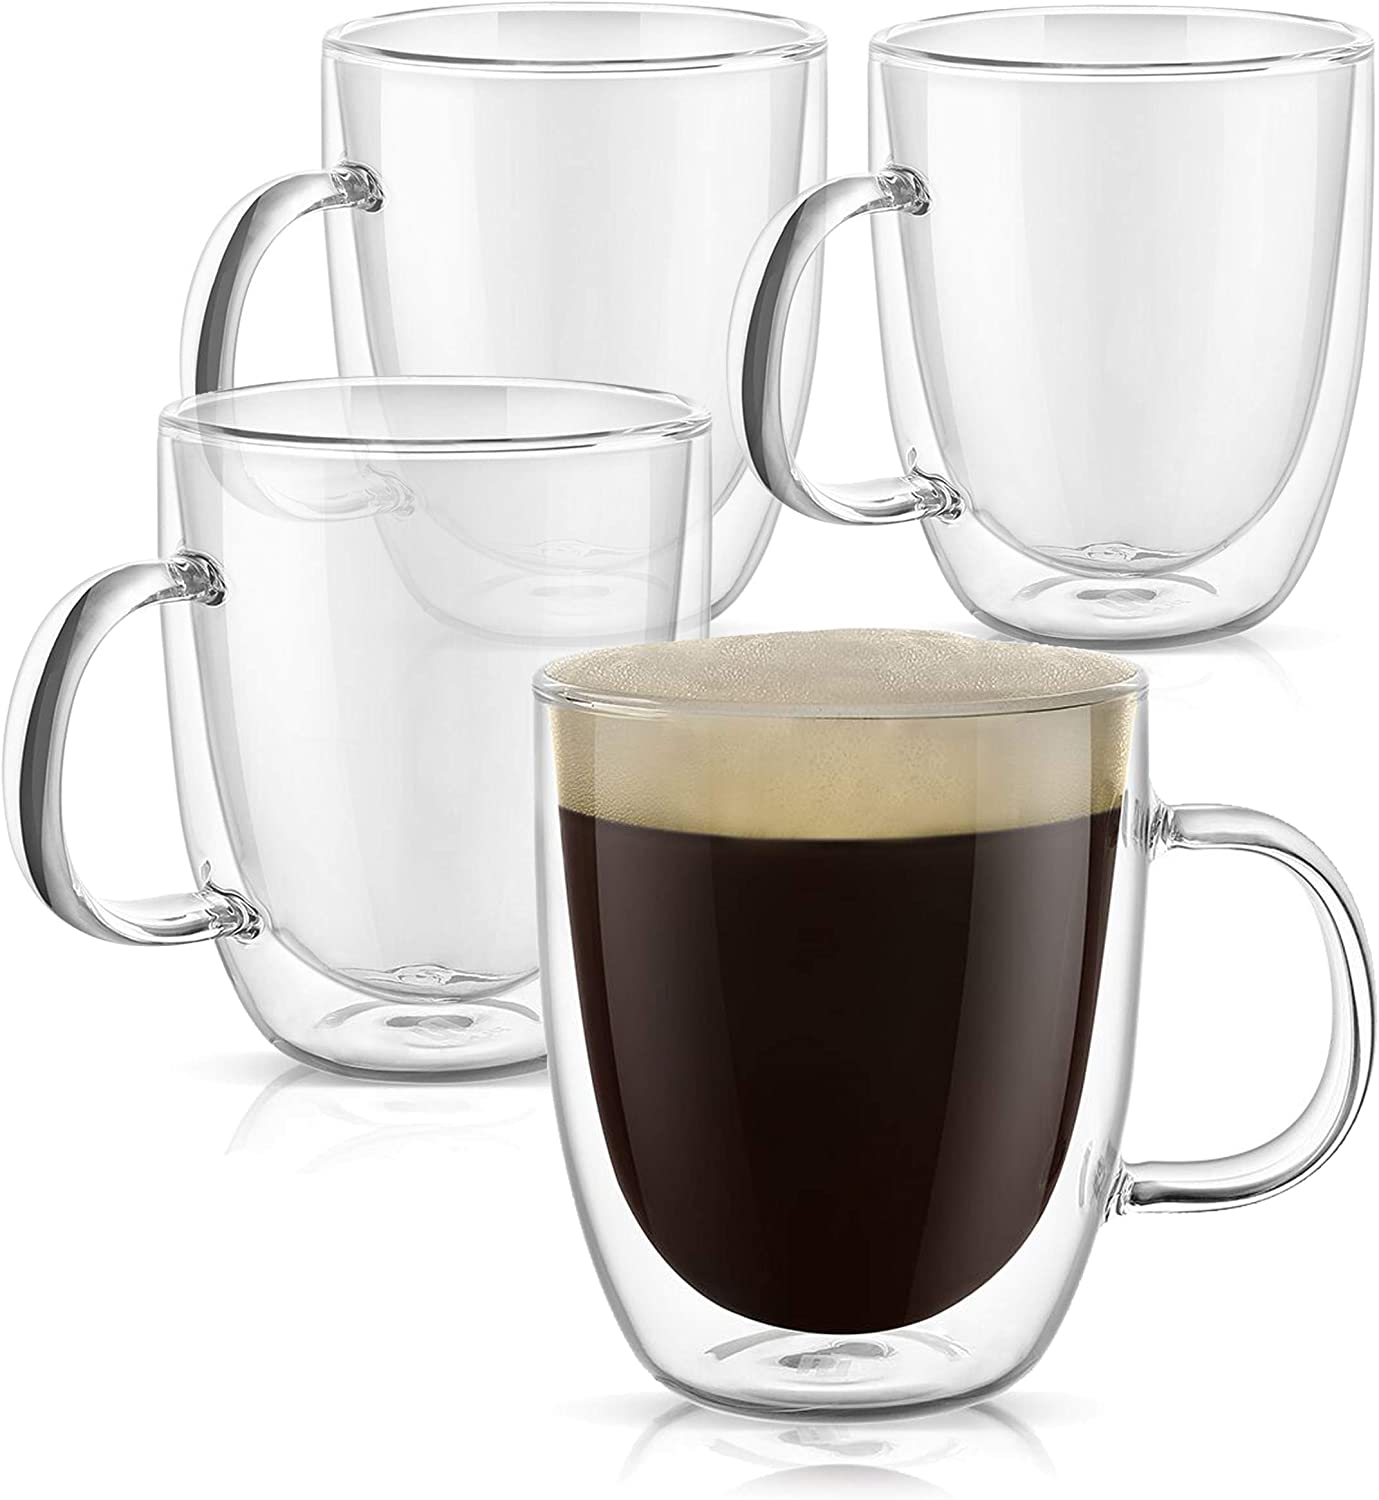 PunPun Glassware Large Clear Coffee Mugs Set of 4, Double Wall Insulated Glass Mugs with Handle, Thermal Glass Coffee Mugs Each 500ml (17 oz), Lead Free Hand Made